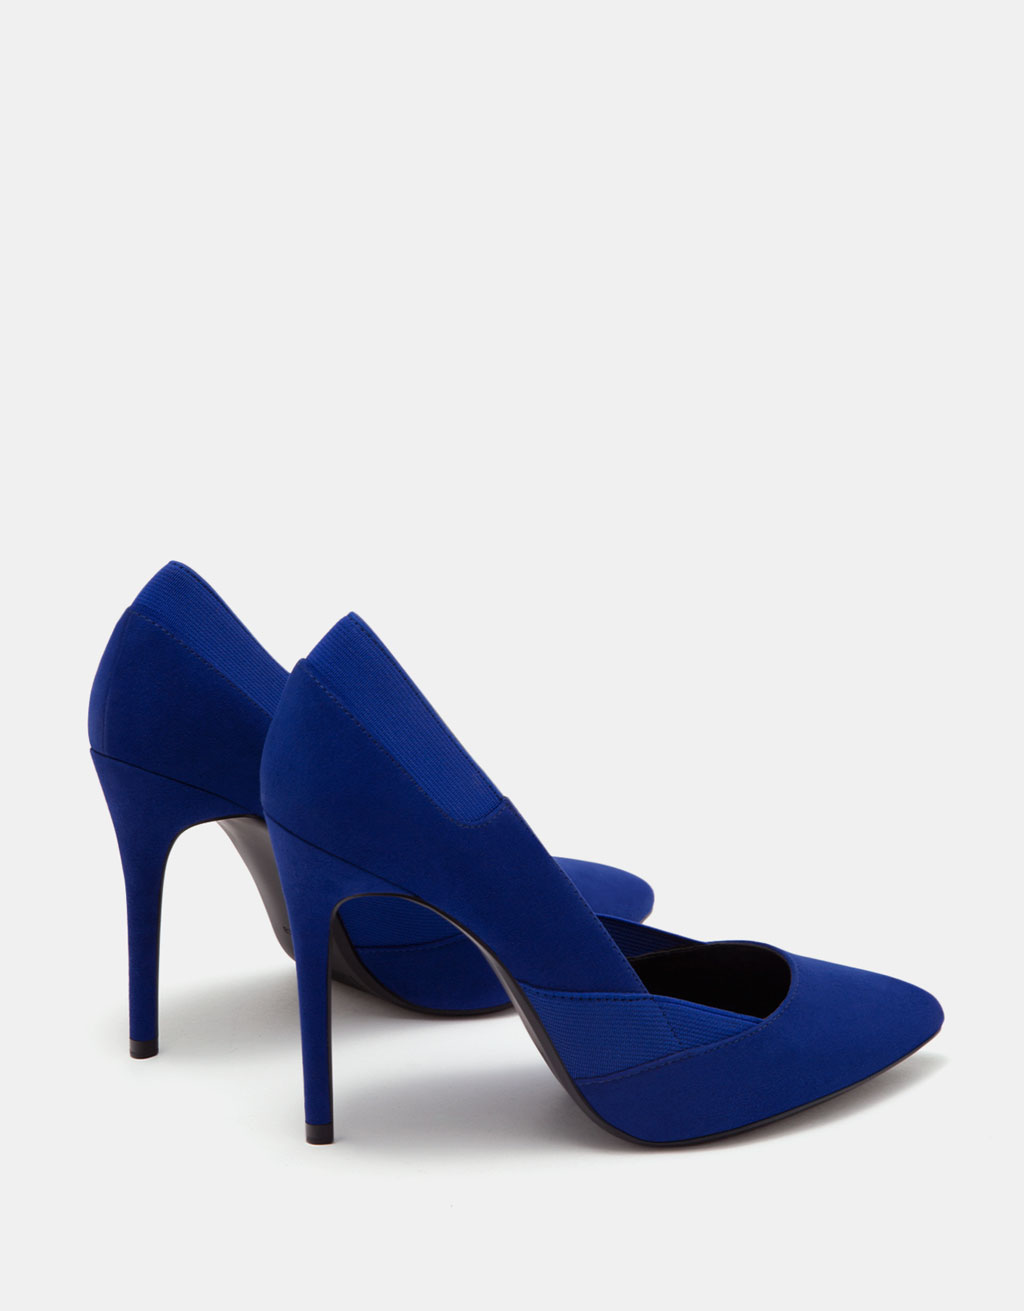 Stiletto-heel shoes with elastic side details